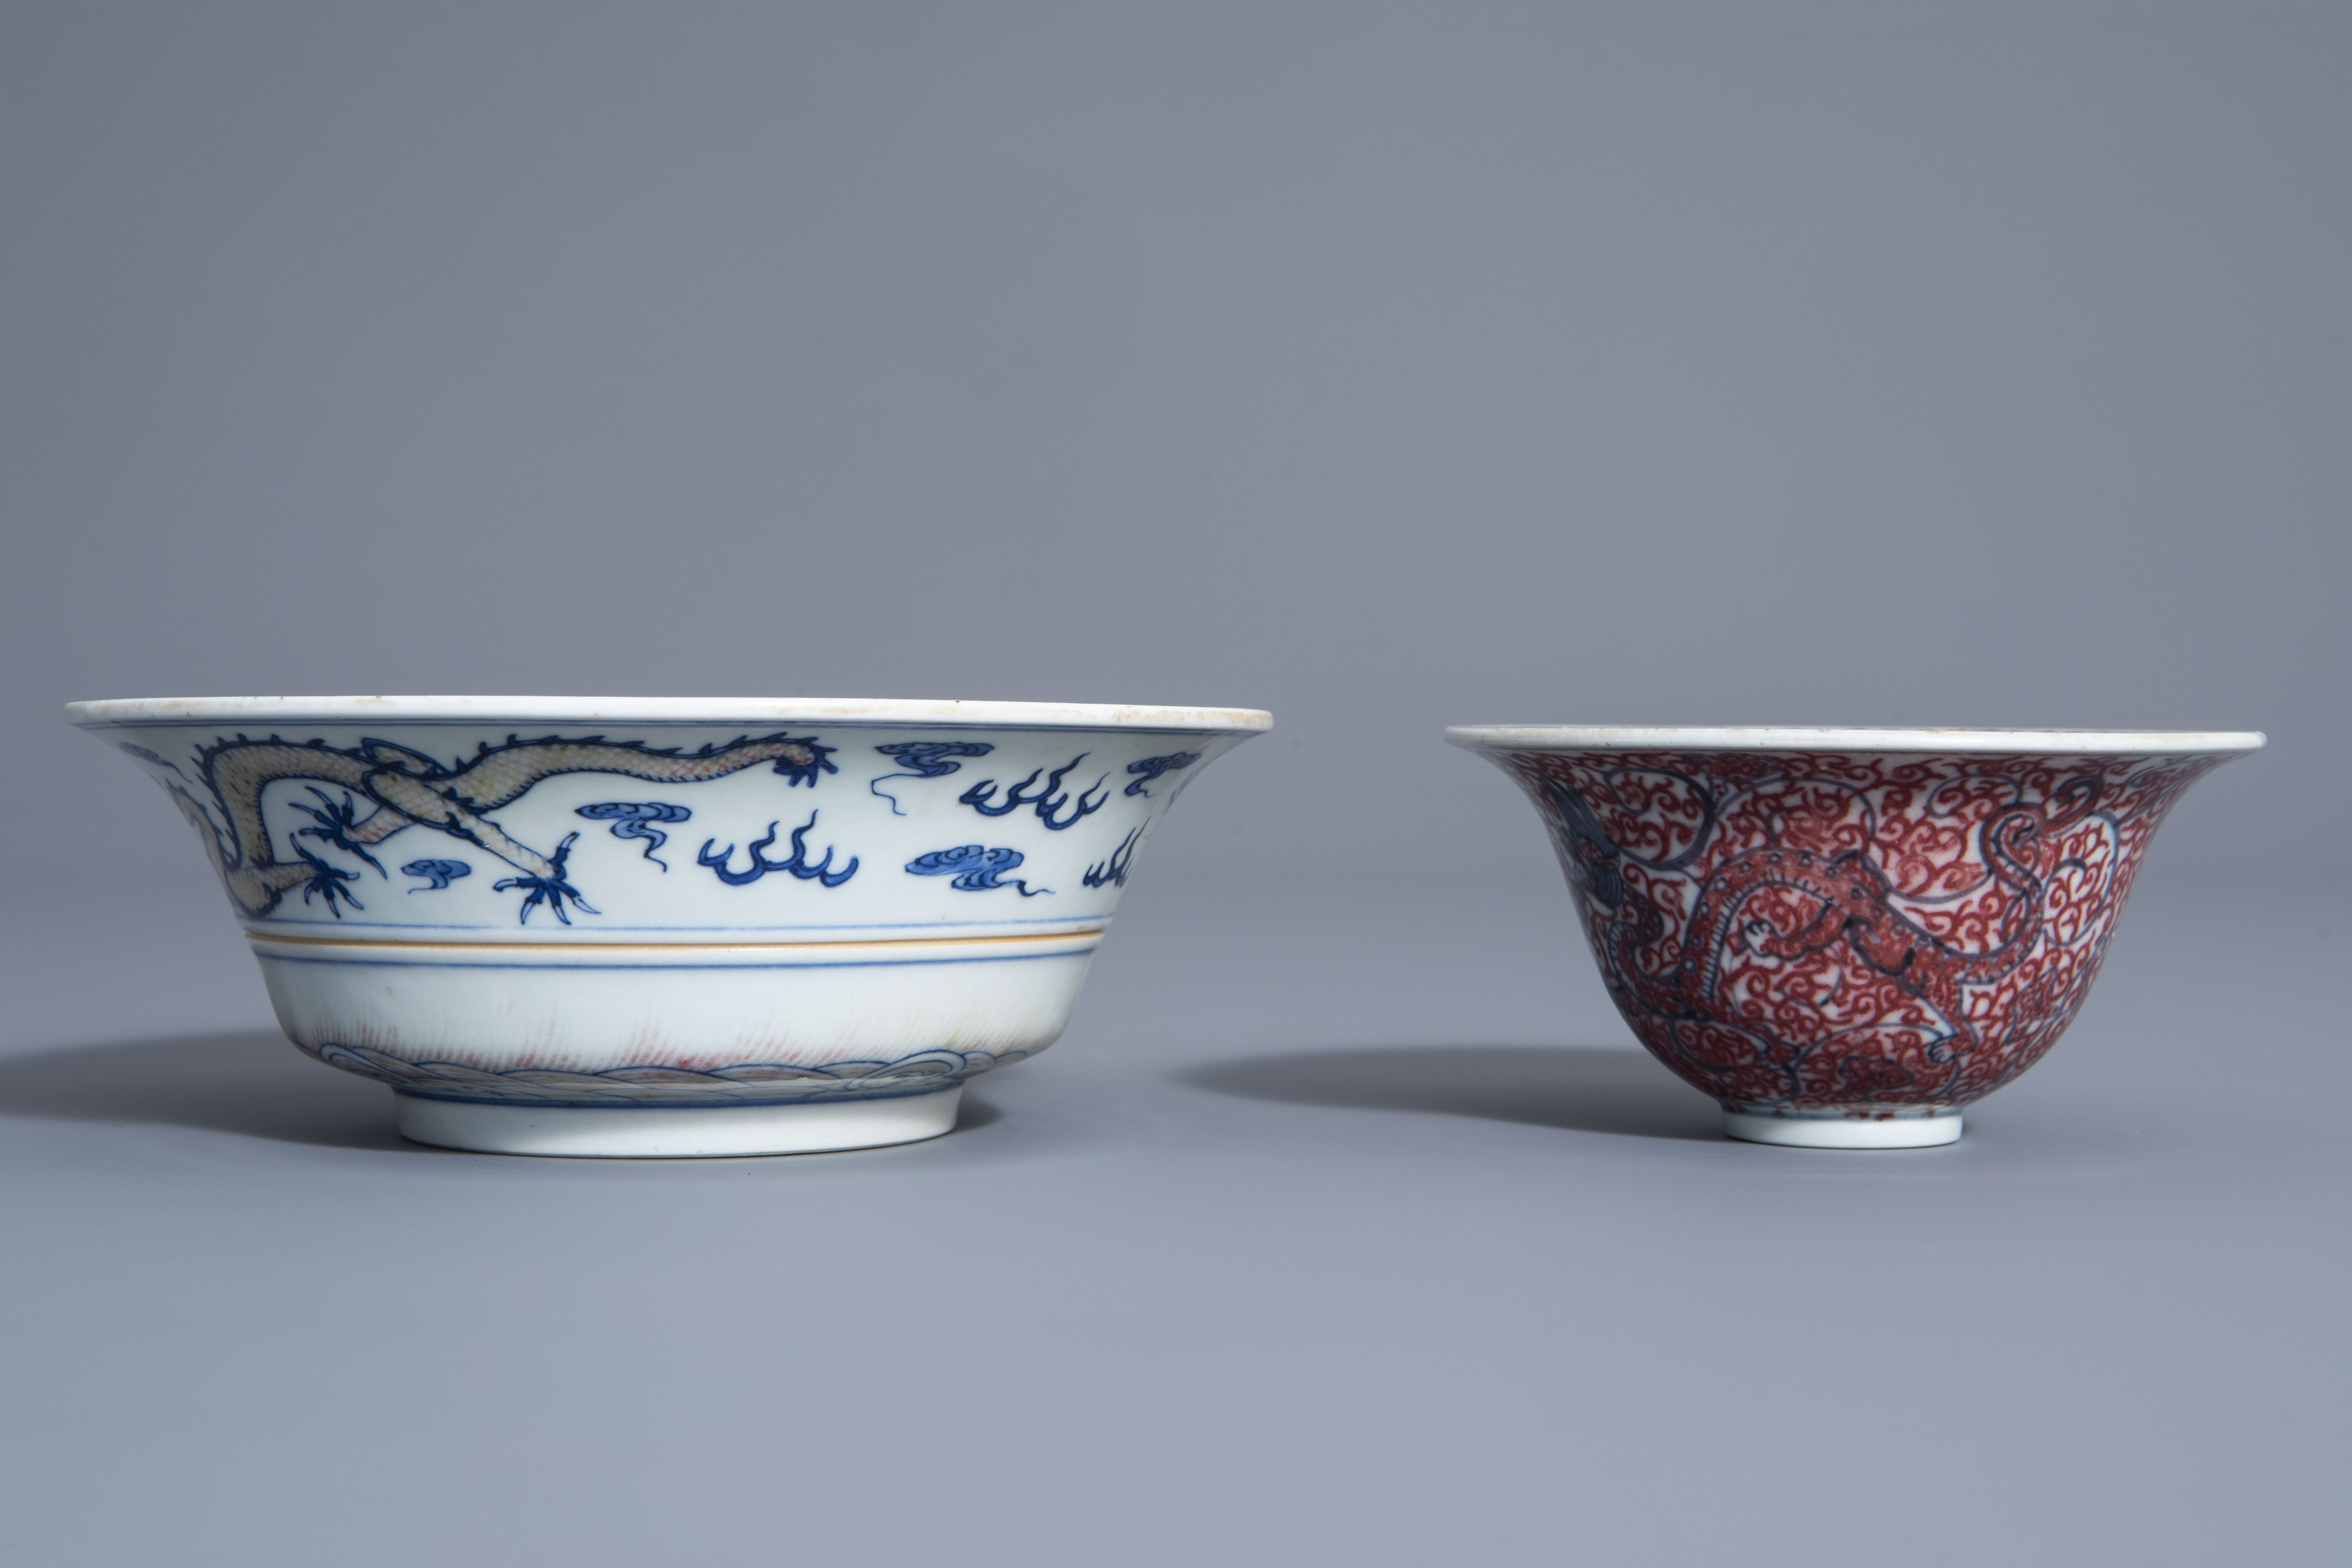 Two Chinese blue, white and copper red bowls, Kangxi mark, 19th/20th C. - Image 5 of 7